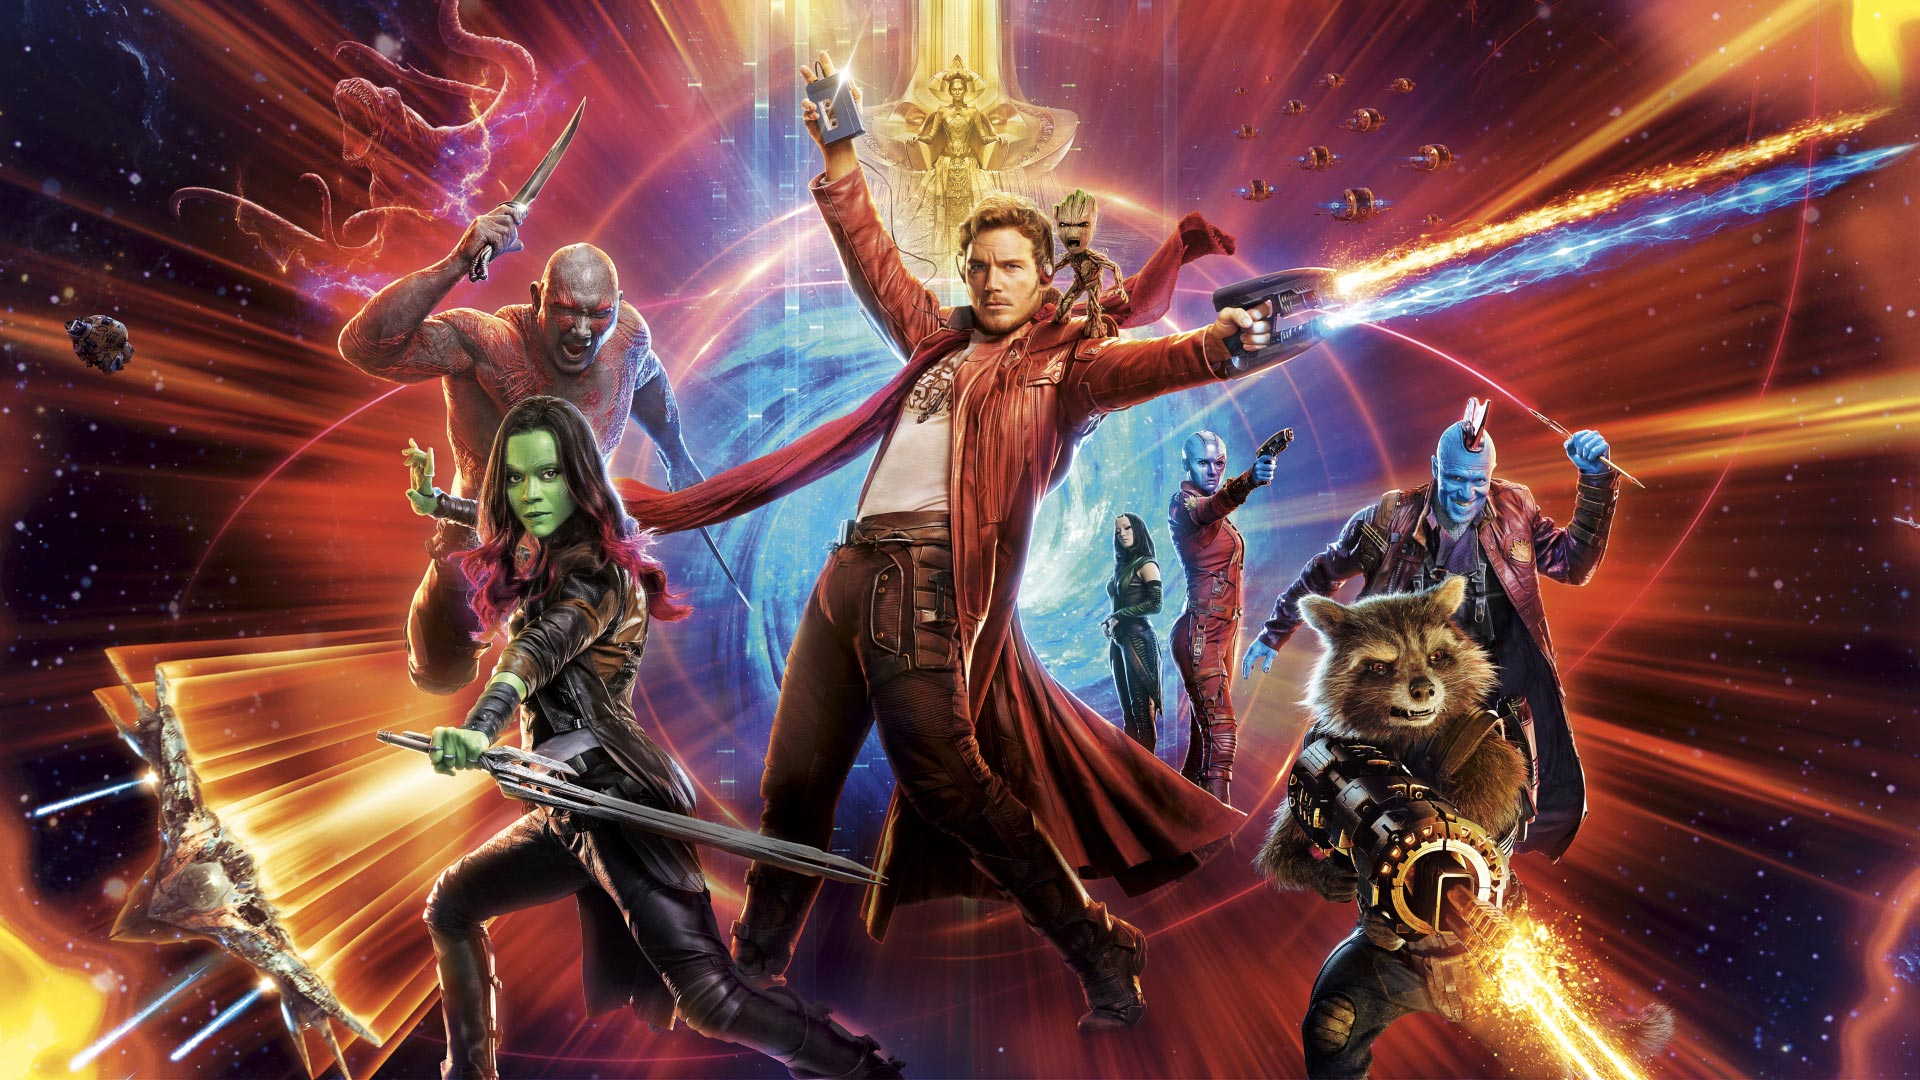 Guardians Of The Galaxy 2 Theme For Windows 10 8 7